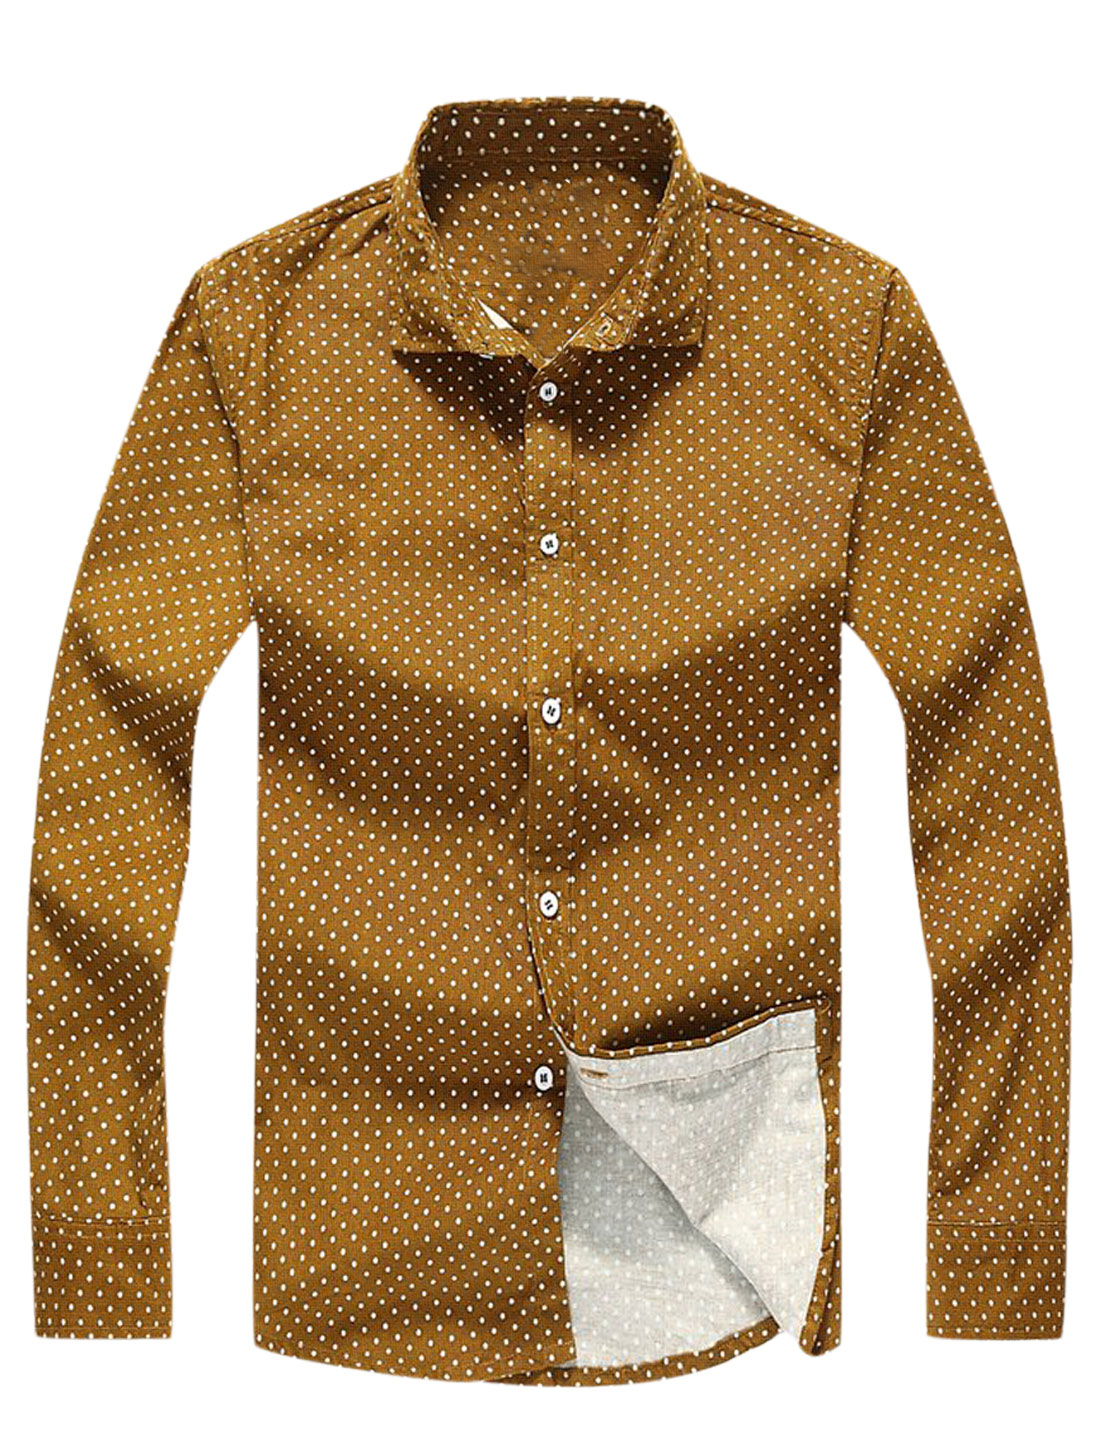 Single Breasted Dots Prints Casual Shirts for Men Ochre S